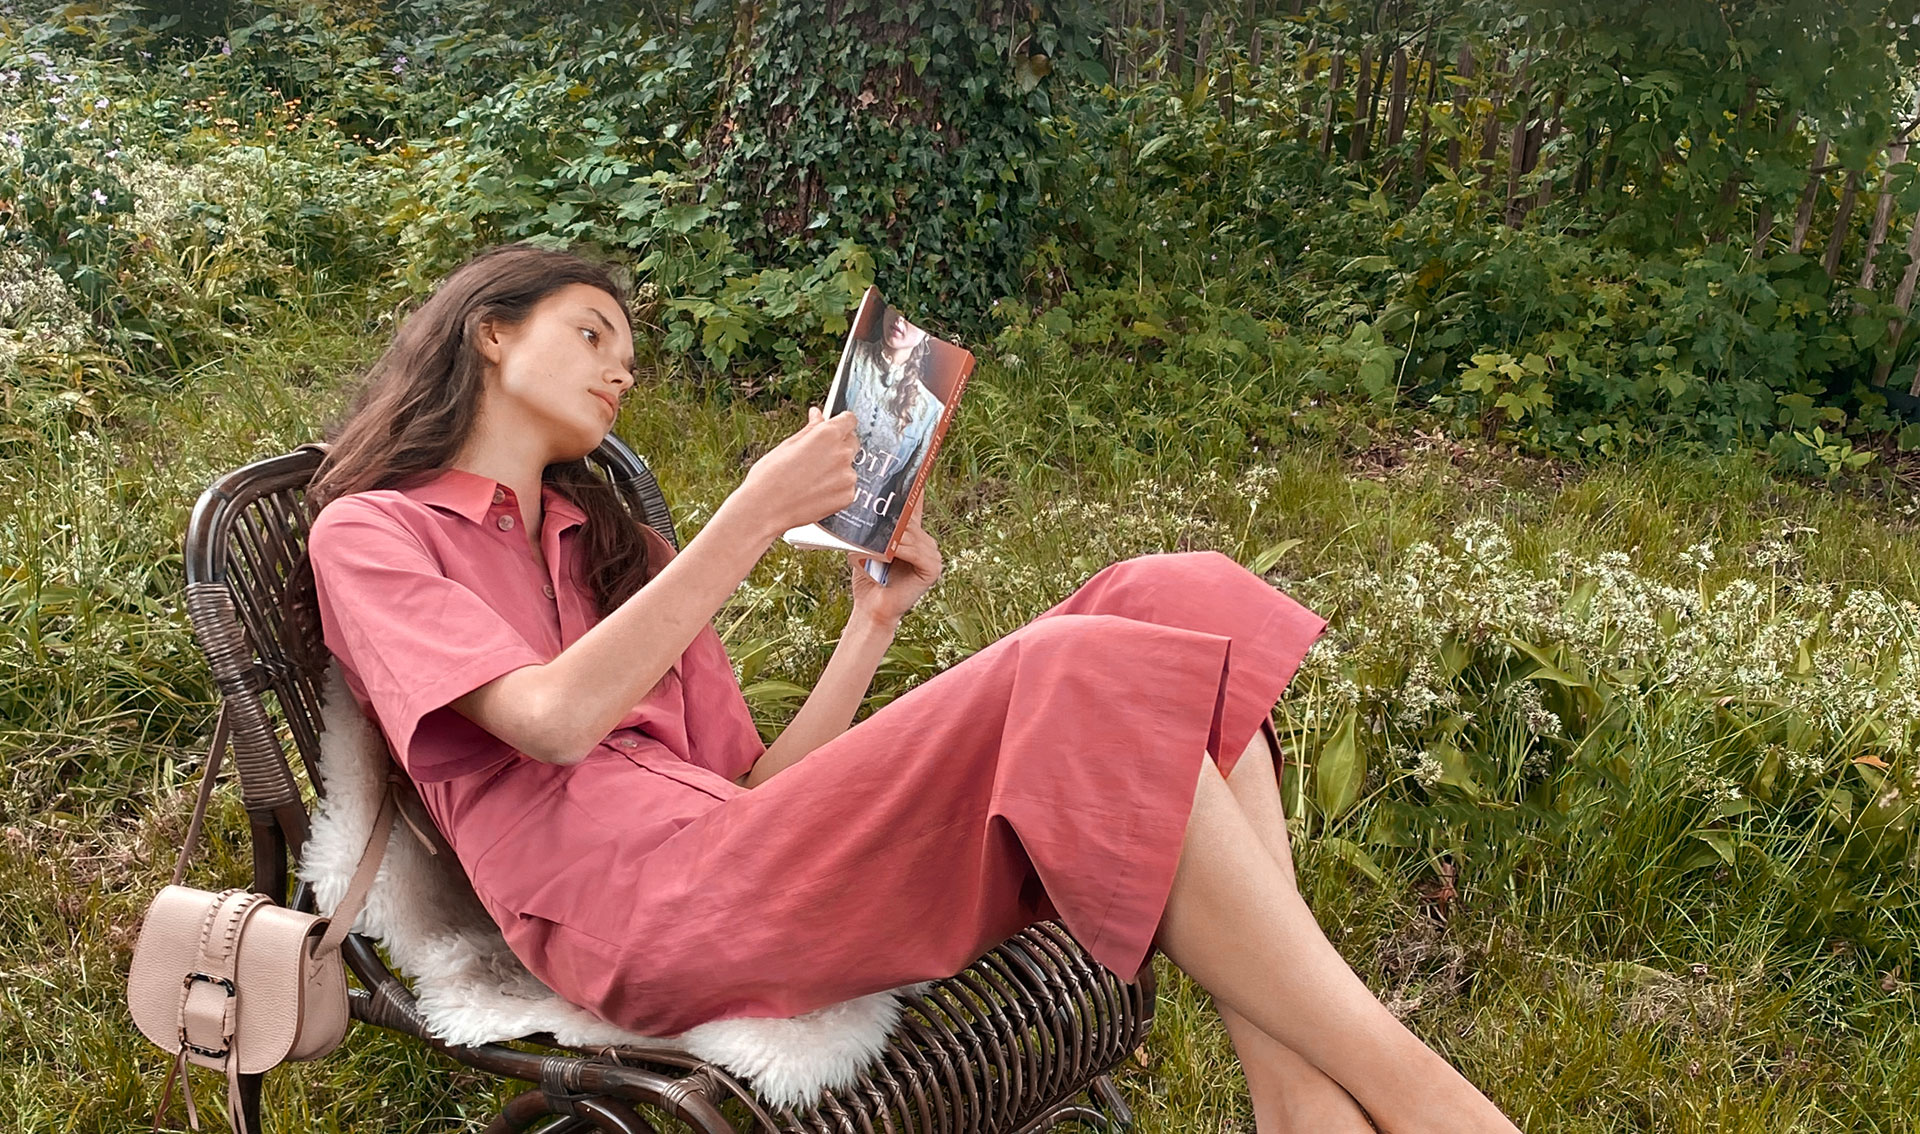 Woman wearing a pink overall, sitting on a chair in the garden, enjoying reading